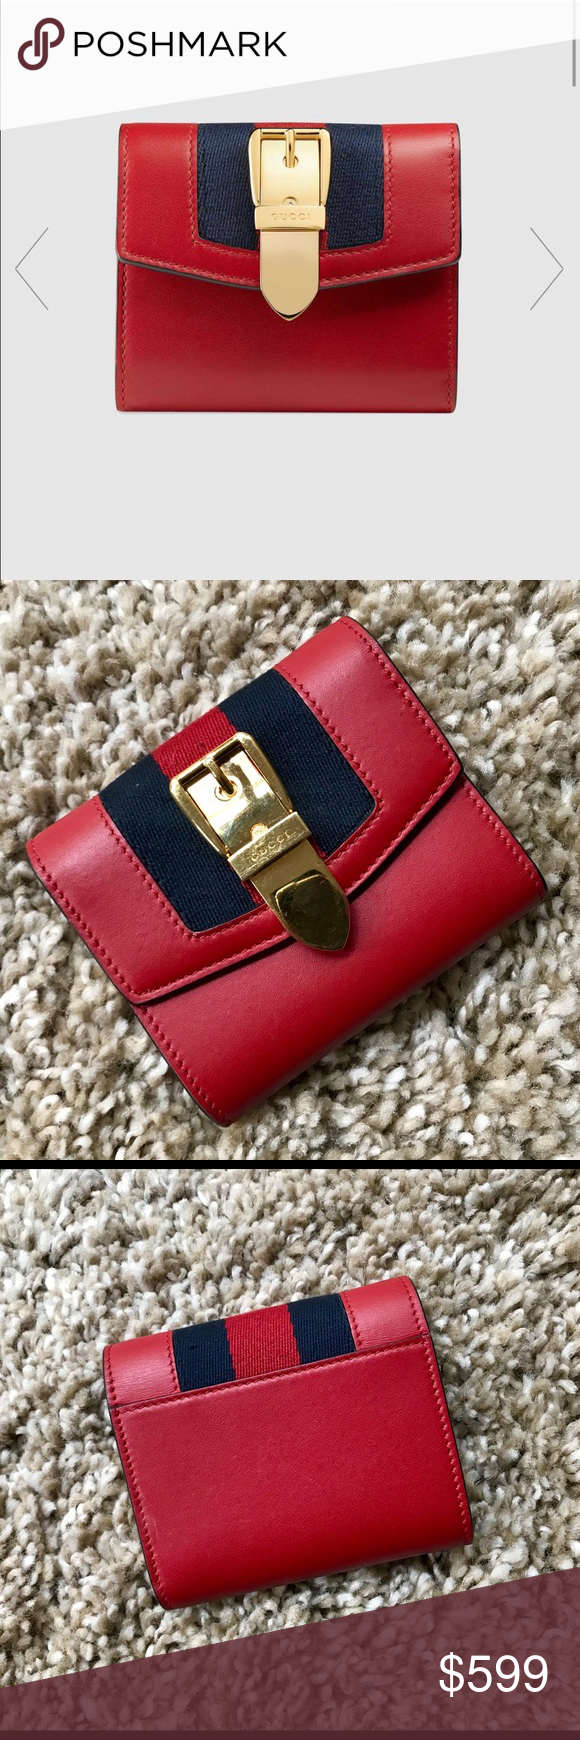 46be382623e8 Gucci Sylvie Leather Wallet 100% Authentic Gucci Sylvie wallet in a small  size and flap